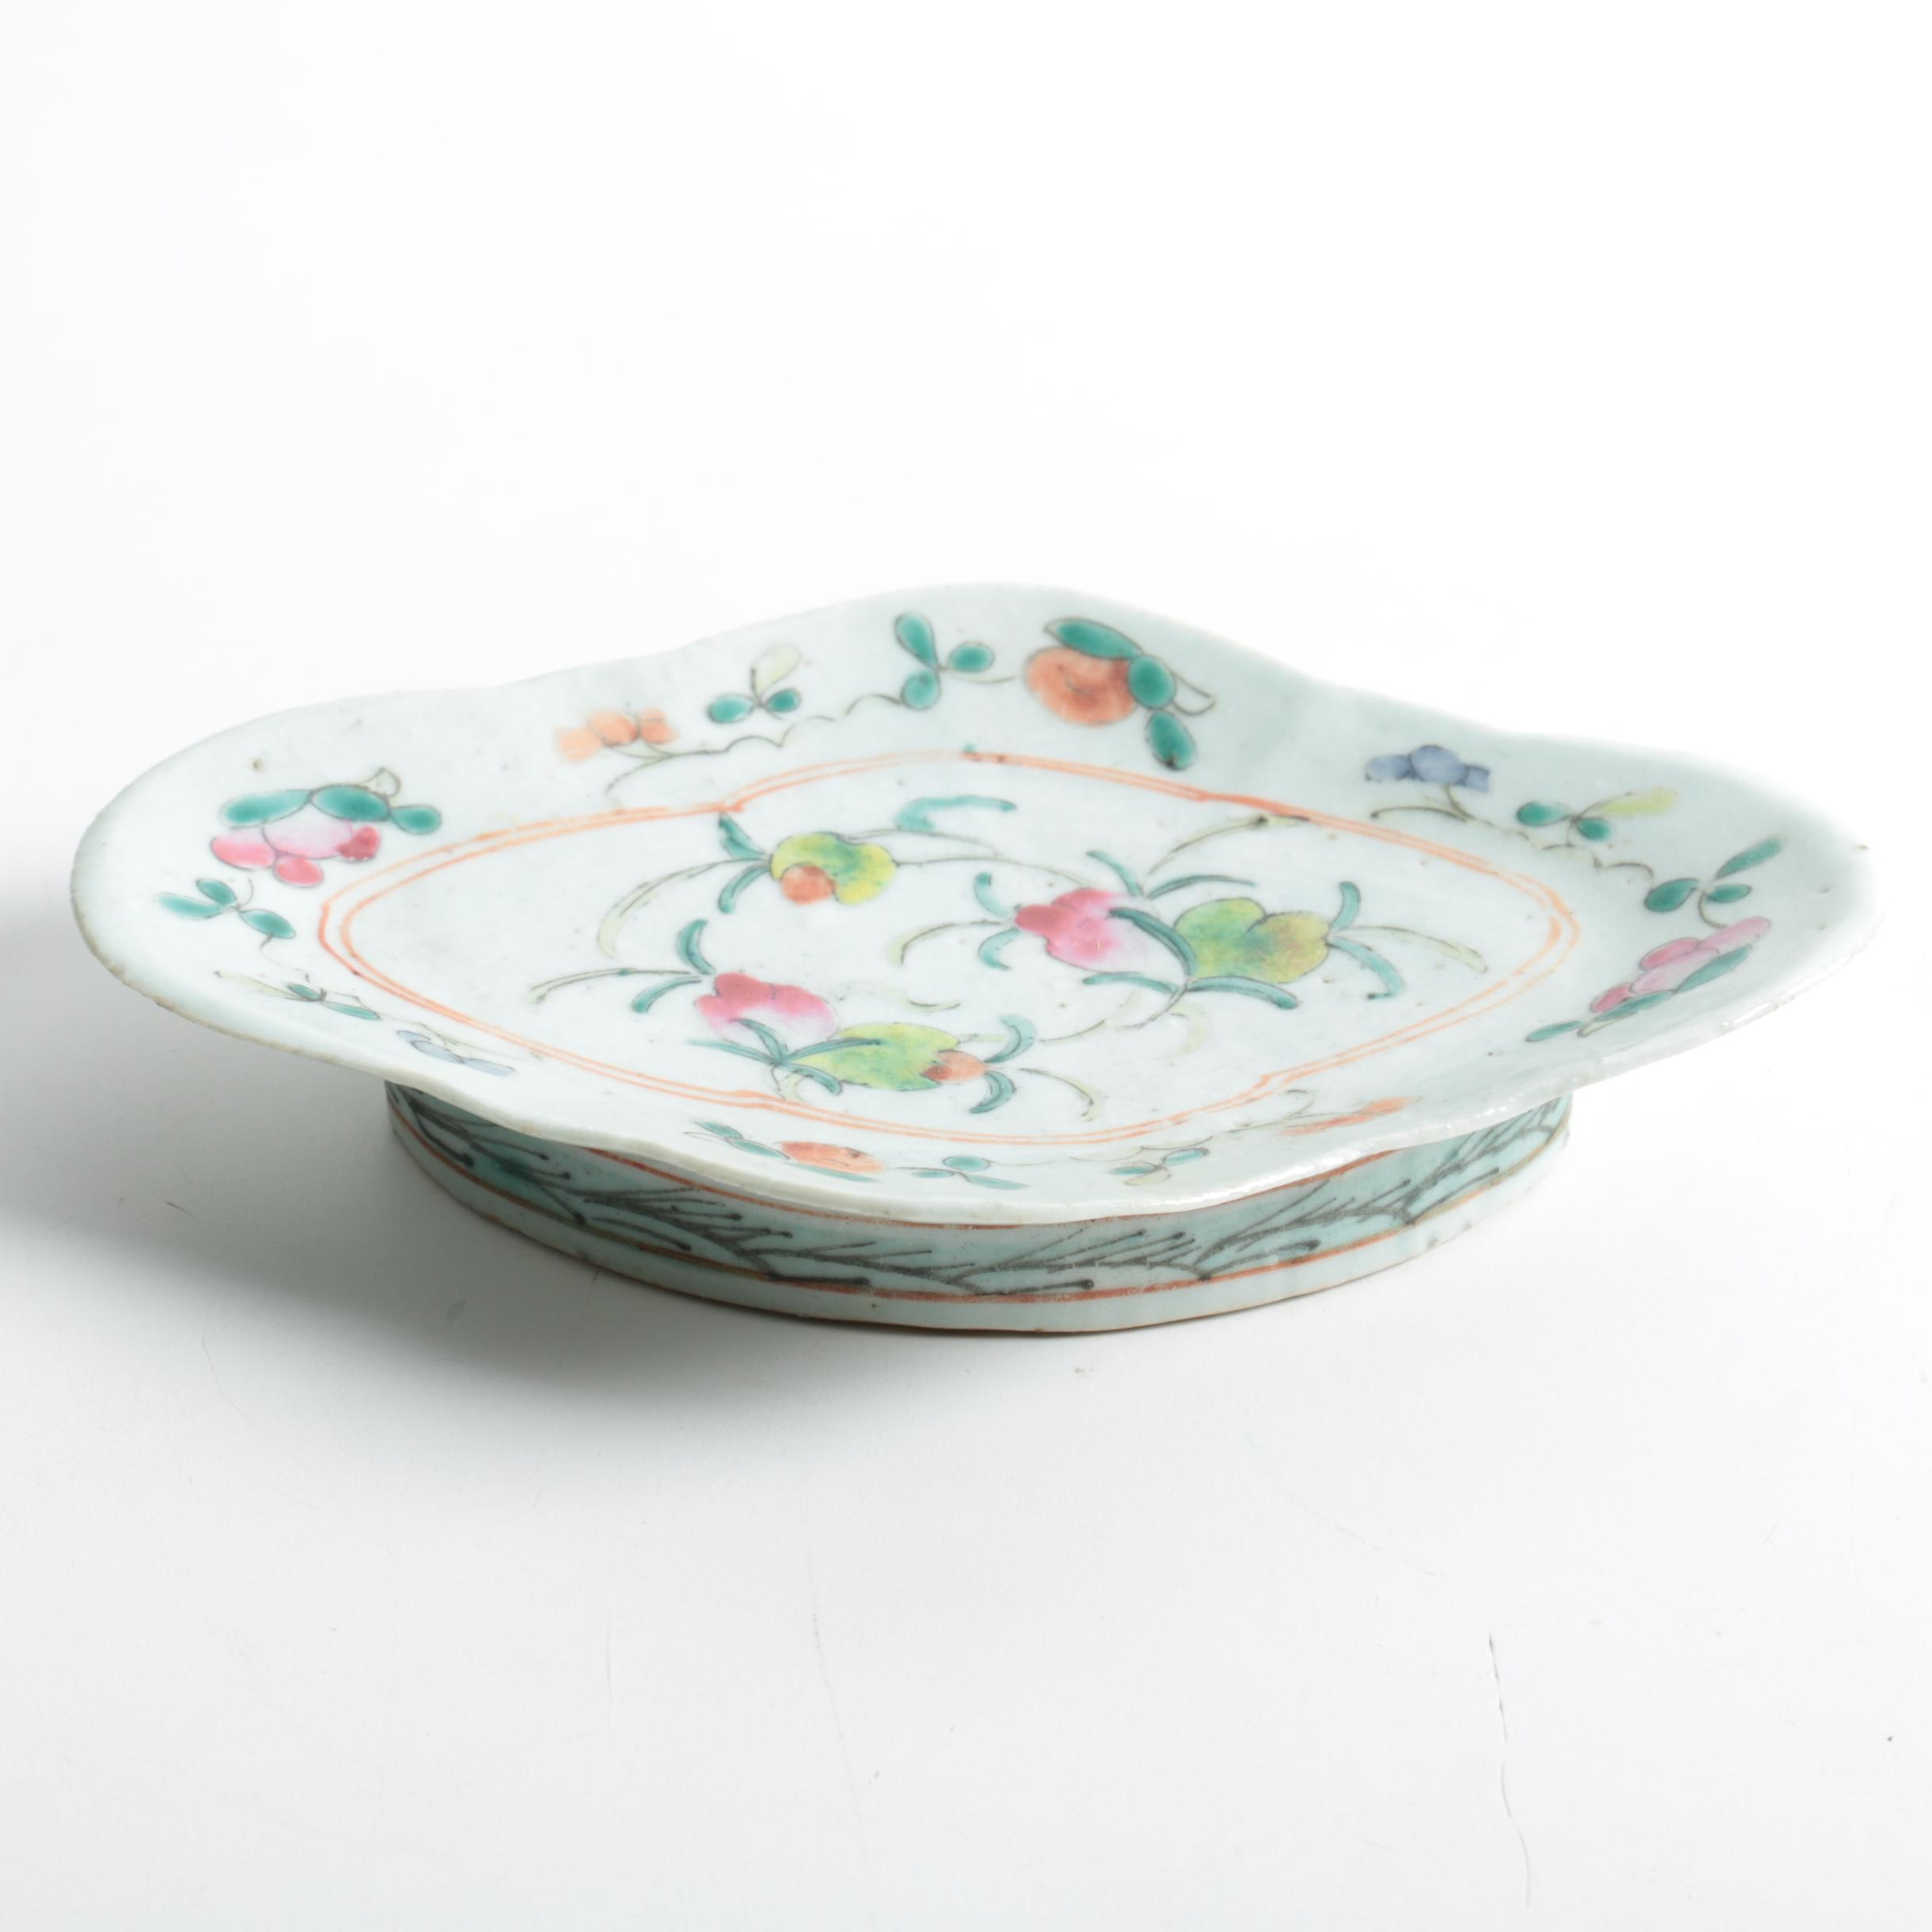 Circa 1900 Chinese Hand Painted Porcelain Dish